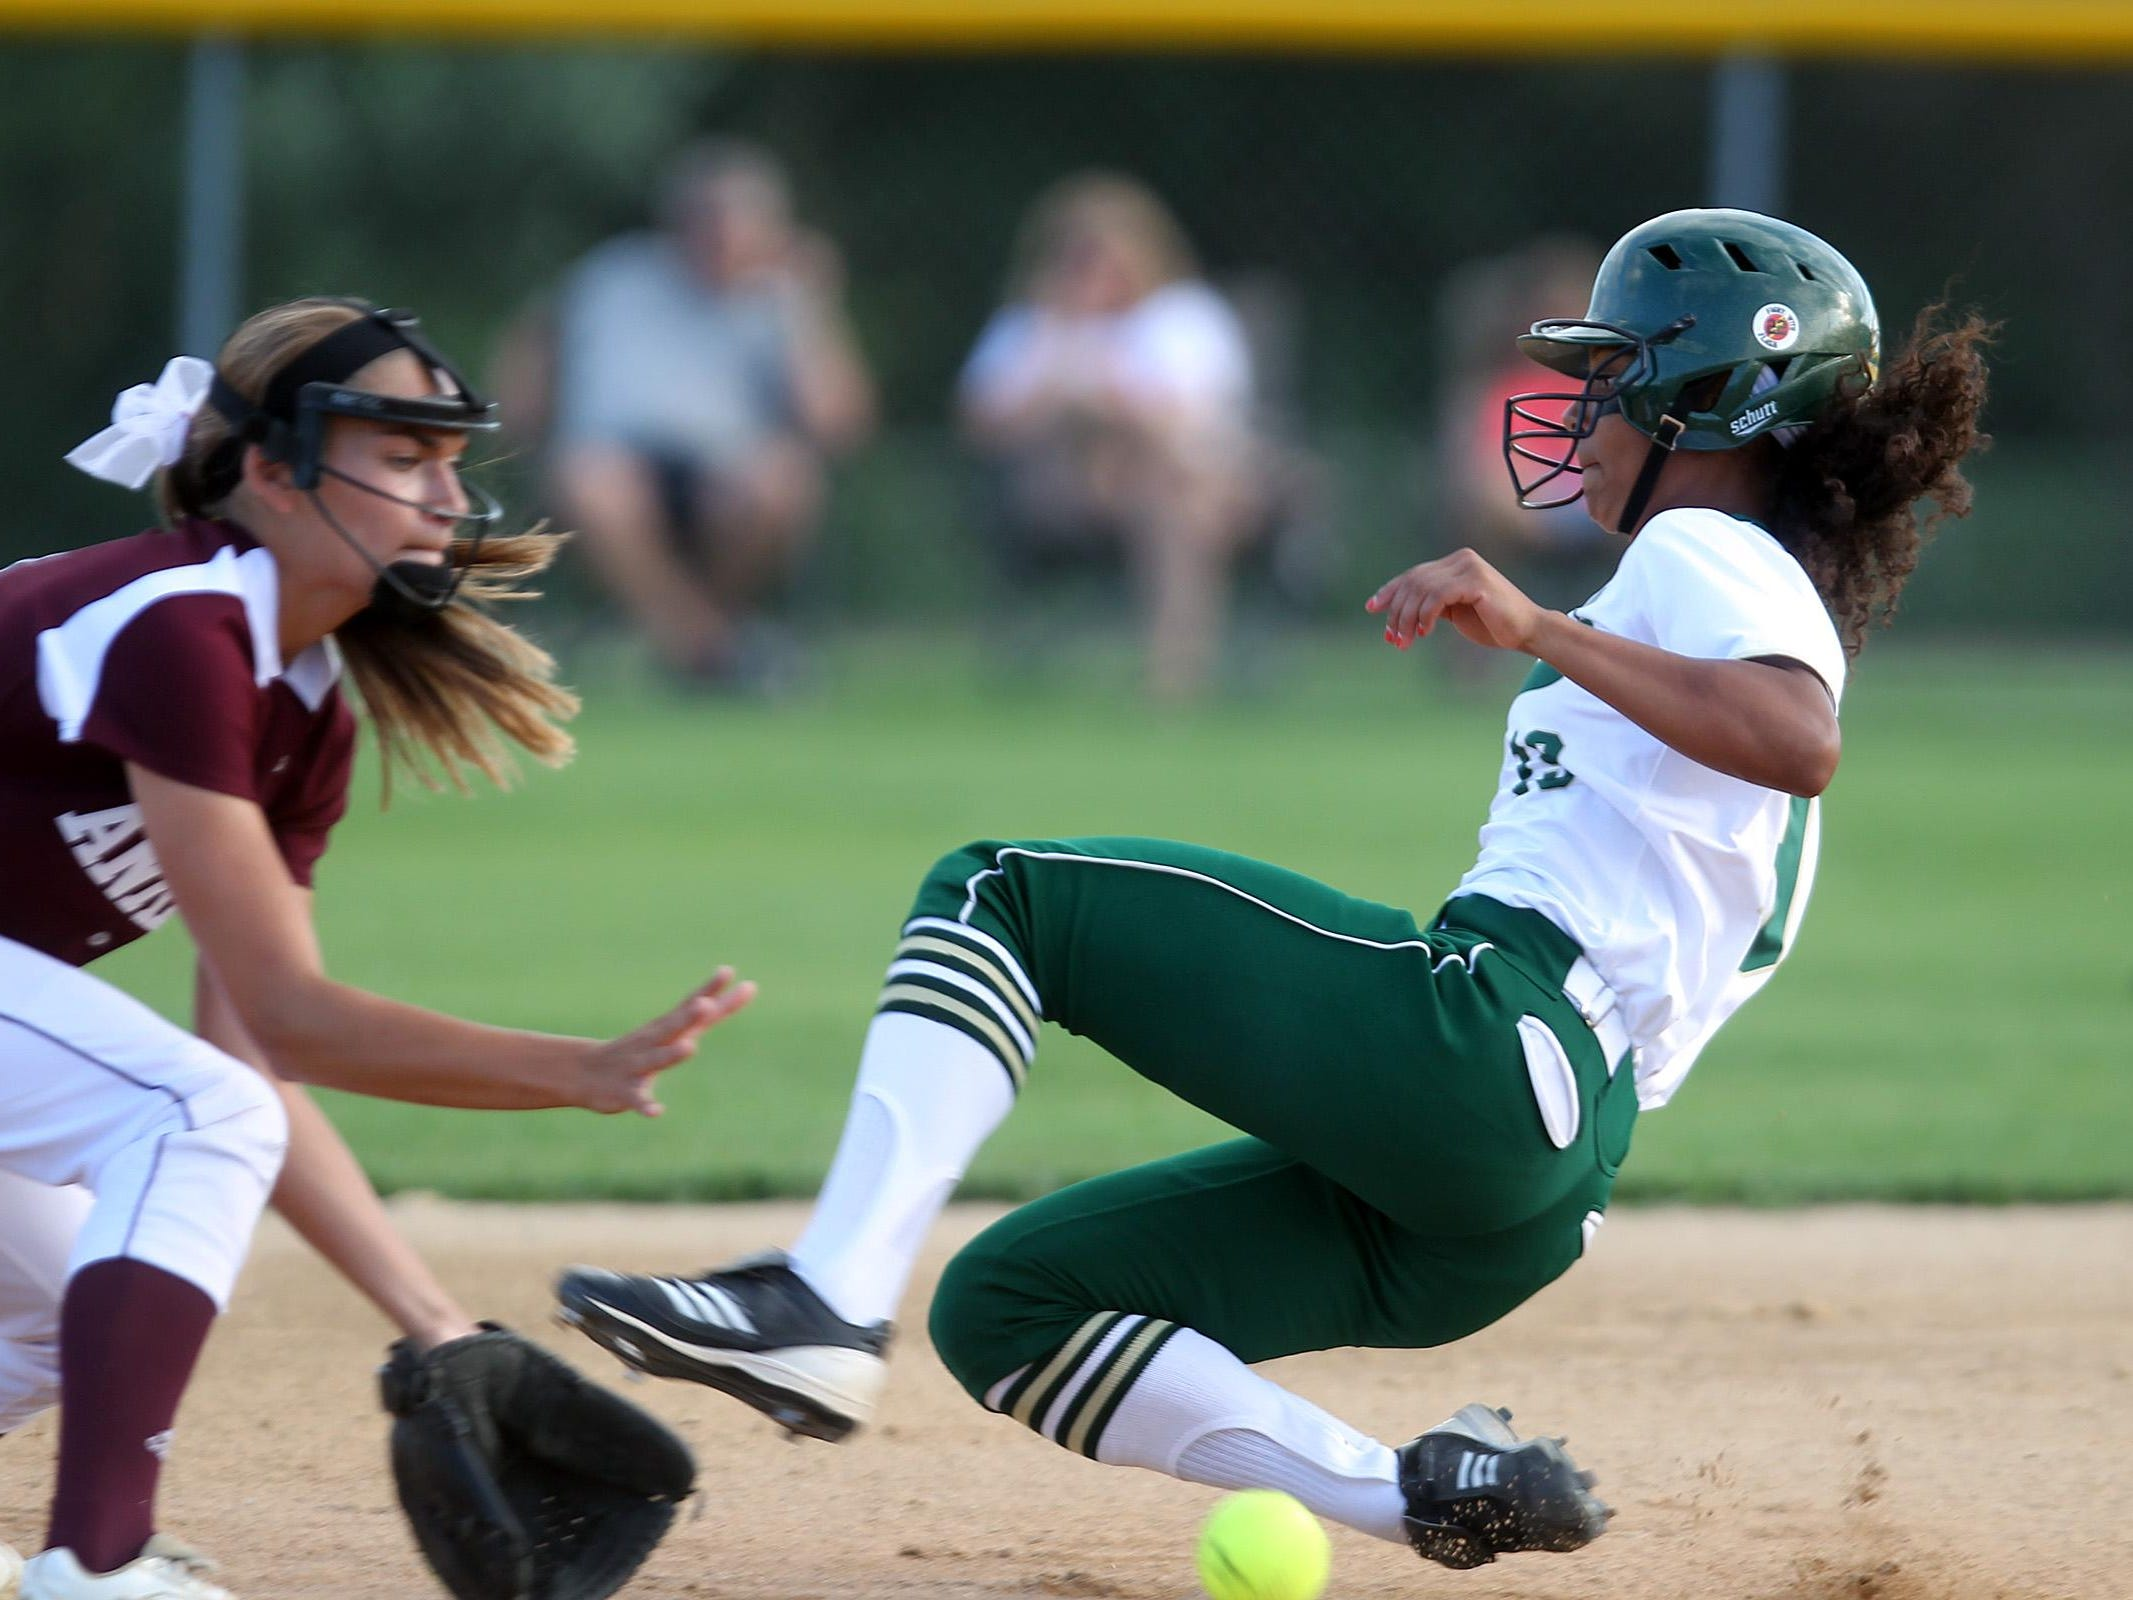 West High's Taleah Smith safely slides past Ankeny's Peyton Daugherty during their Class 5A regional championship game at West High on Tuesday, July 14, 2015. Ankeny won, 3-1, to head to state. David Scrivner / Iowa City Press-Citizen